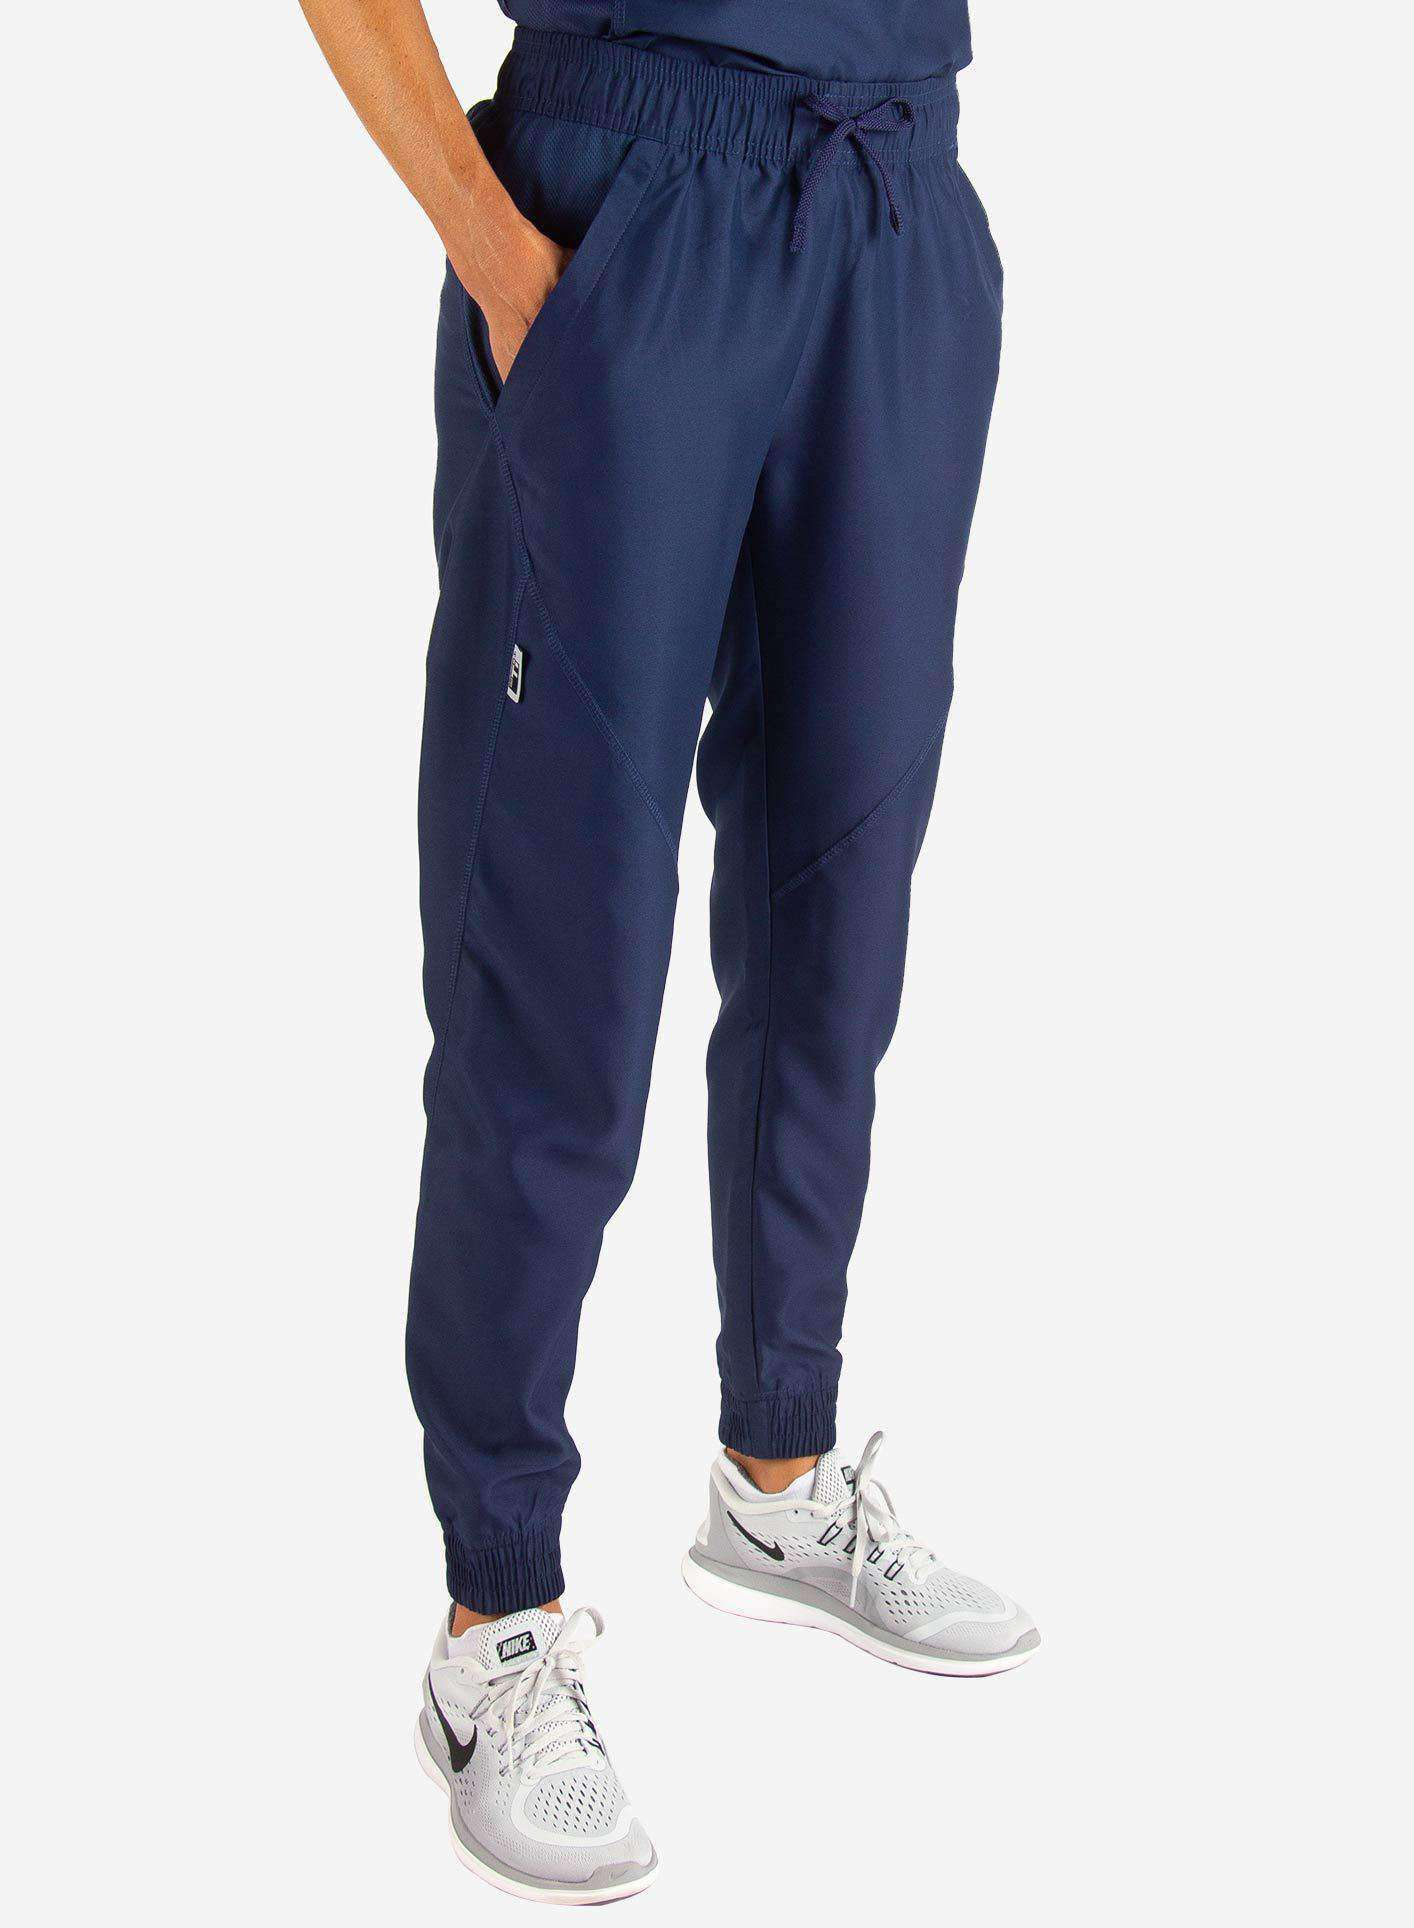 Women's Jogger Scrub Pants in Navy